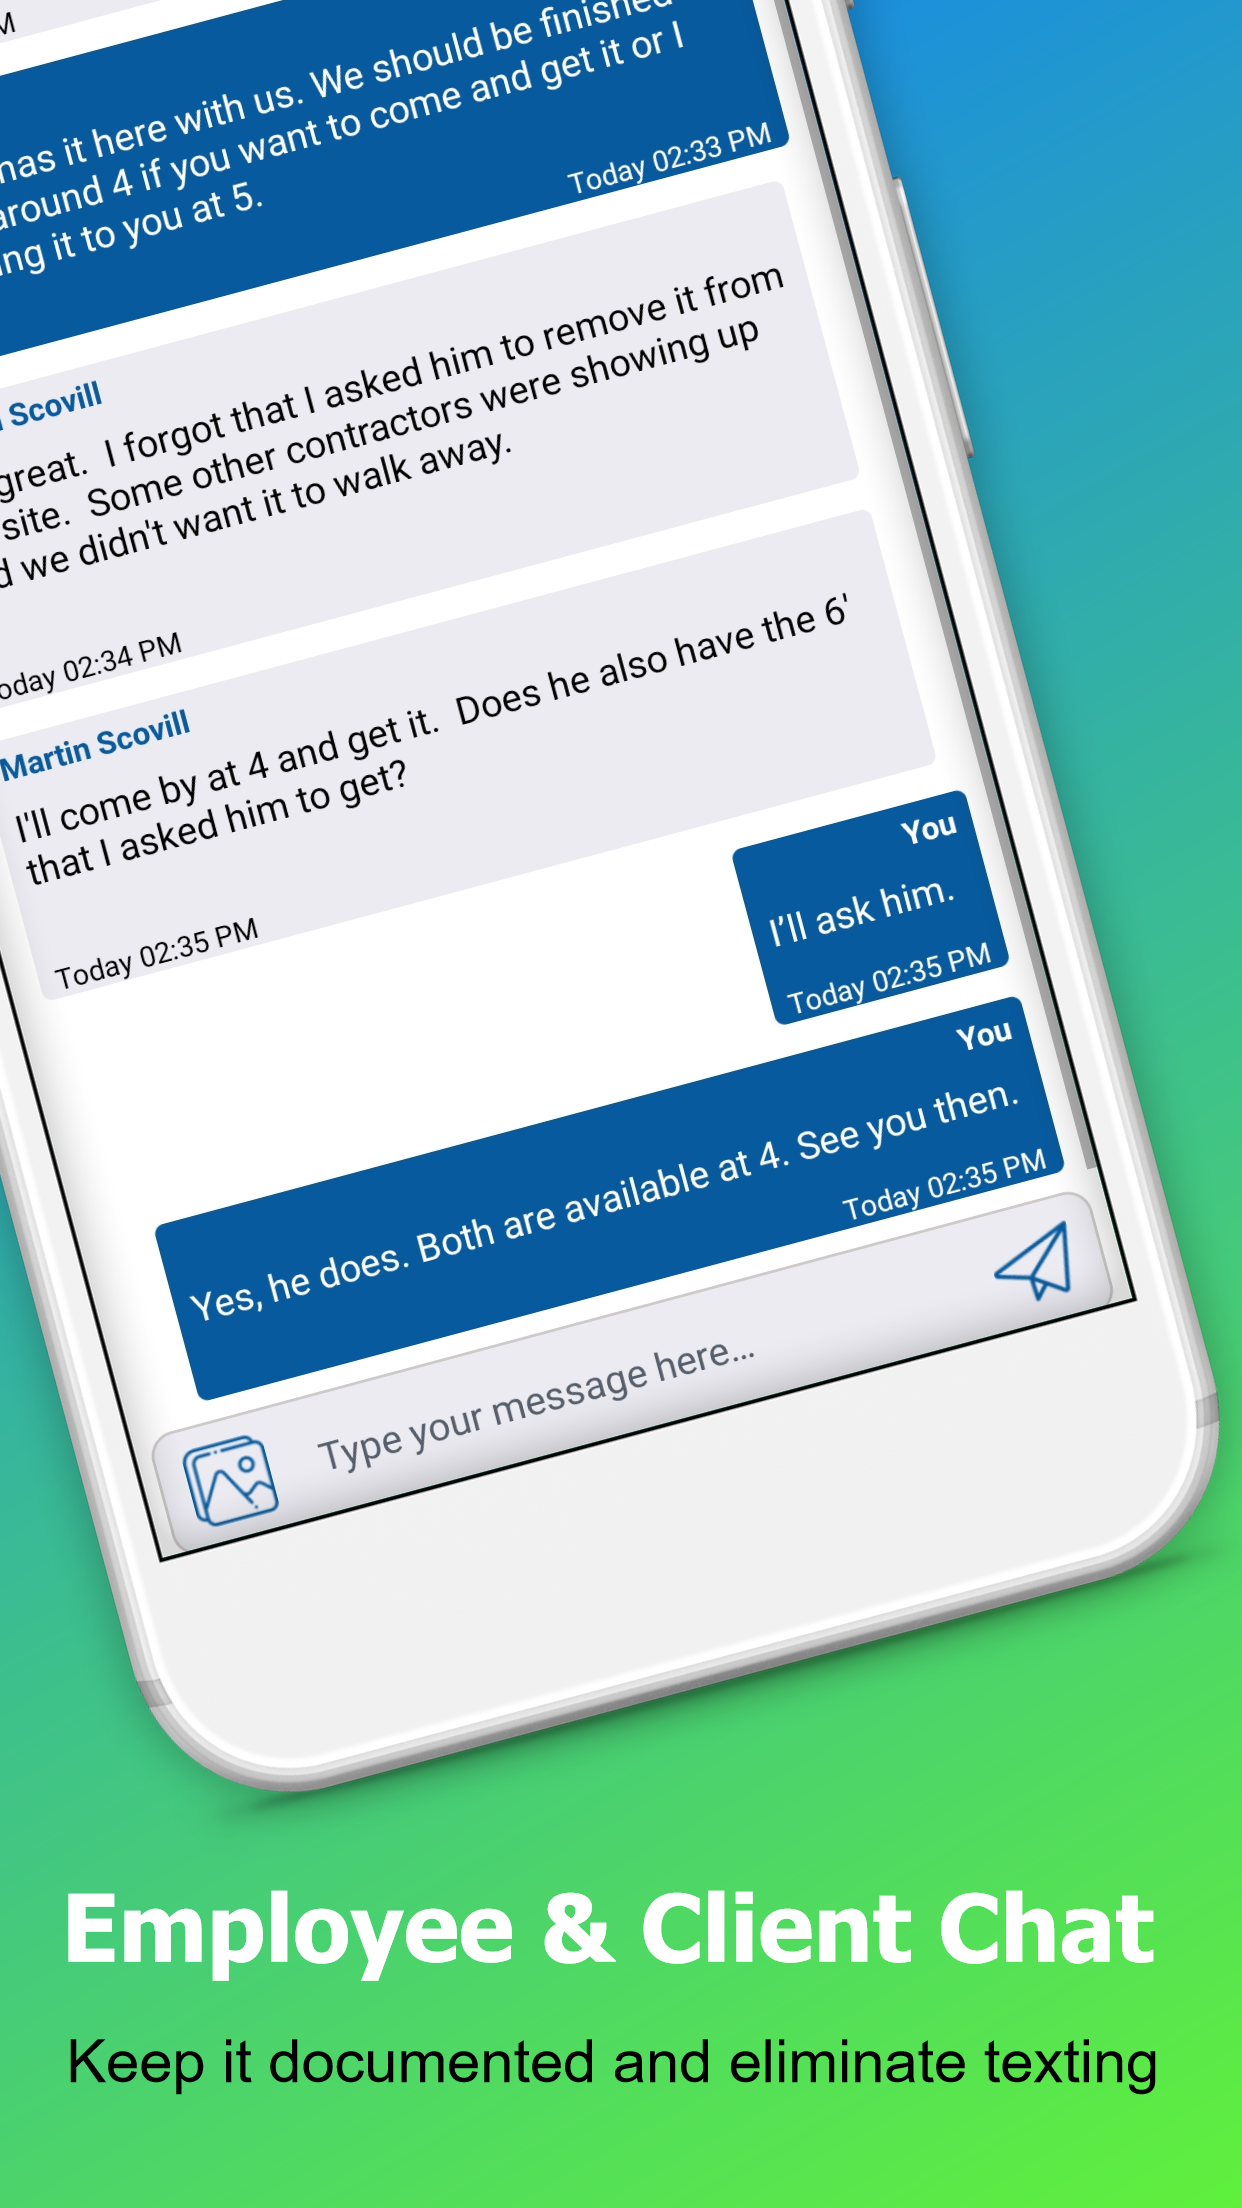 Keep everyone in the loop with team chat and project name.  No more text messages that keep critical people uninformed.